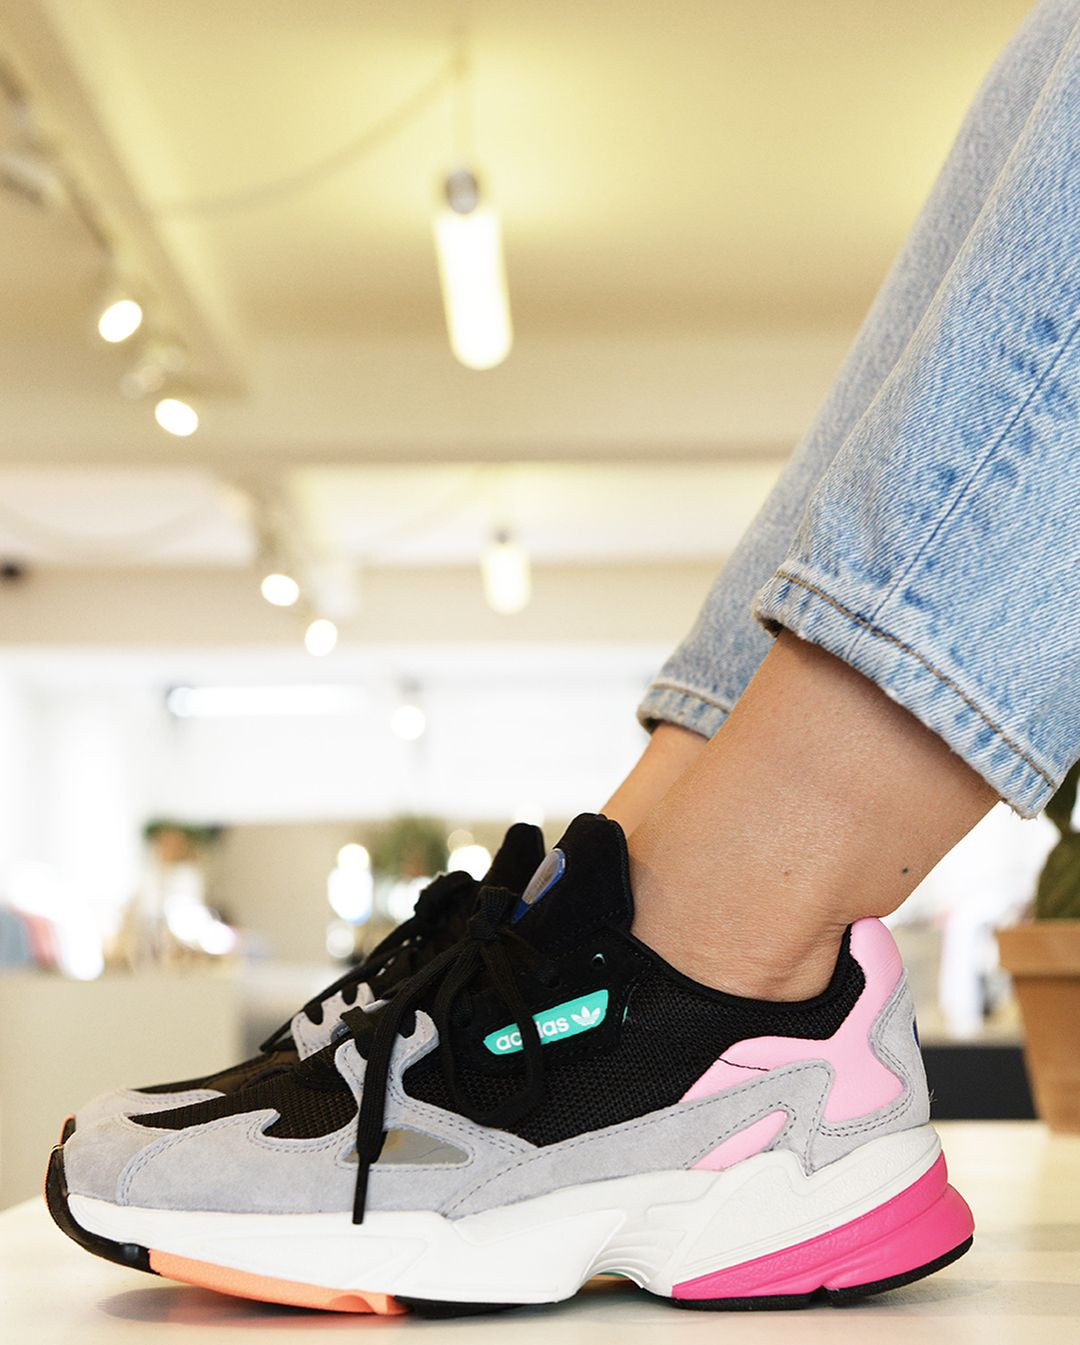 Lizzy is wearing one of the hottest Adidas releases to date The new Adidas  Falcon launches 6efa19720